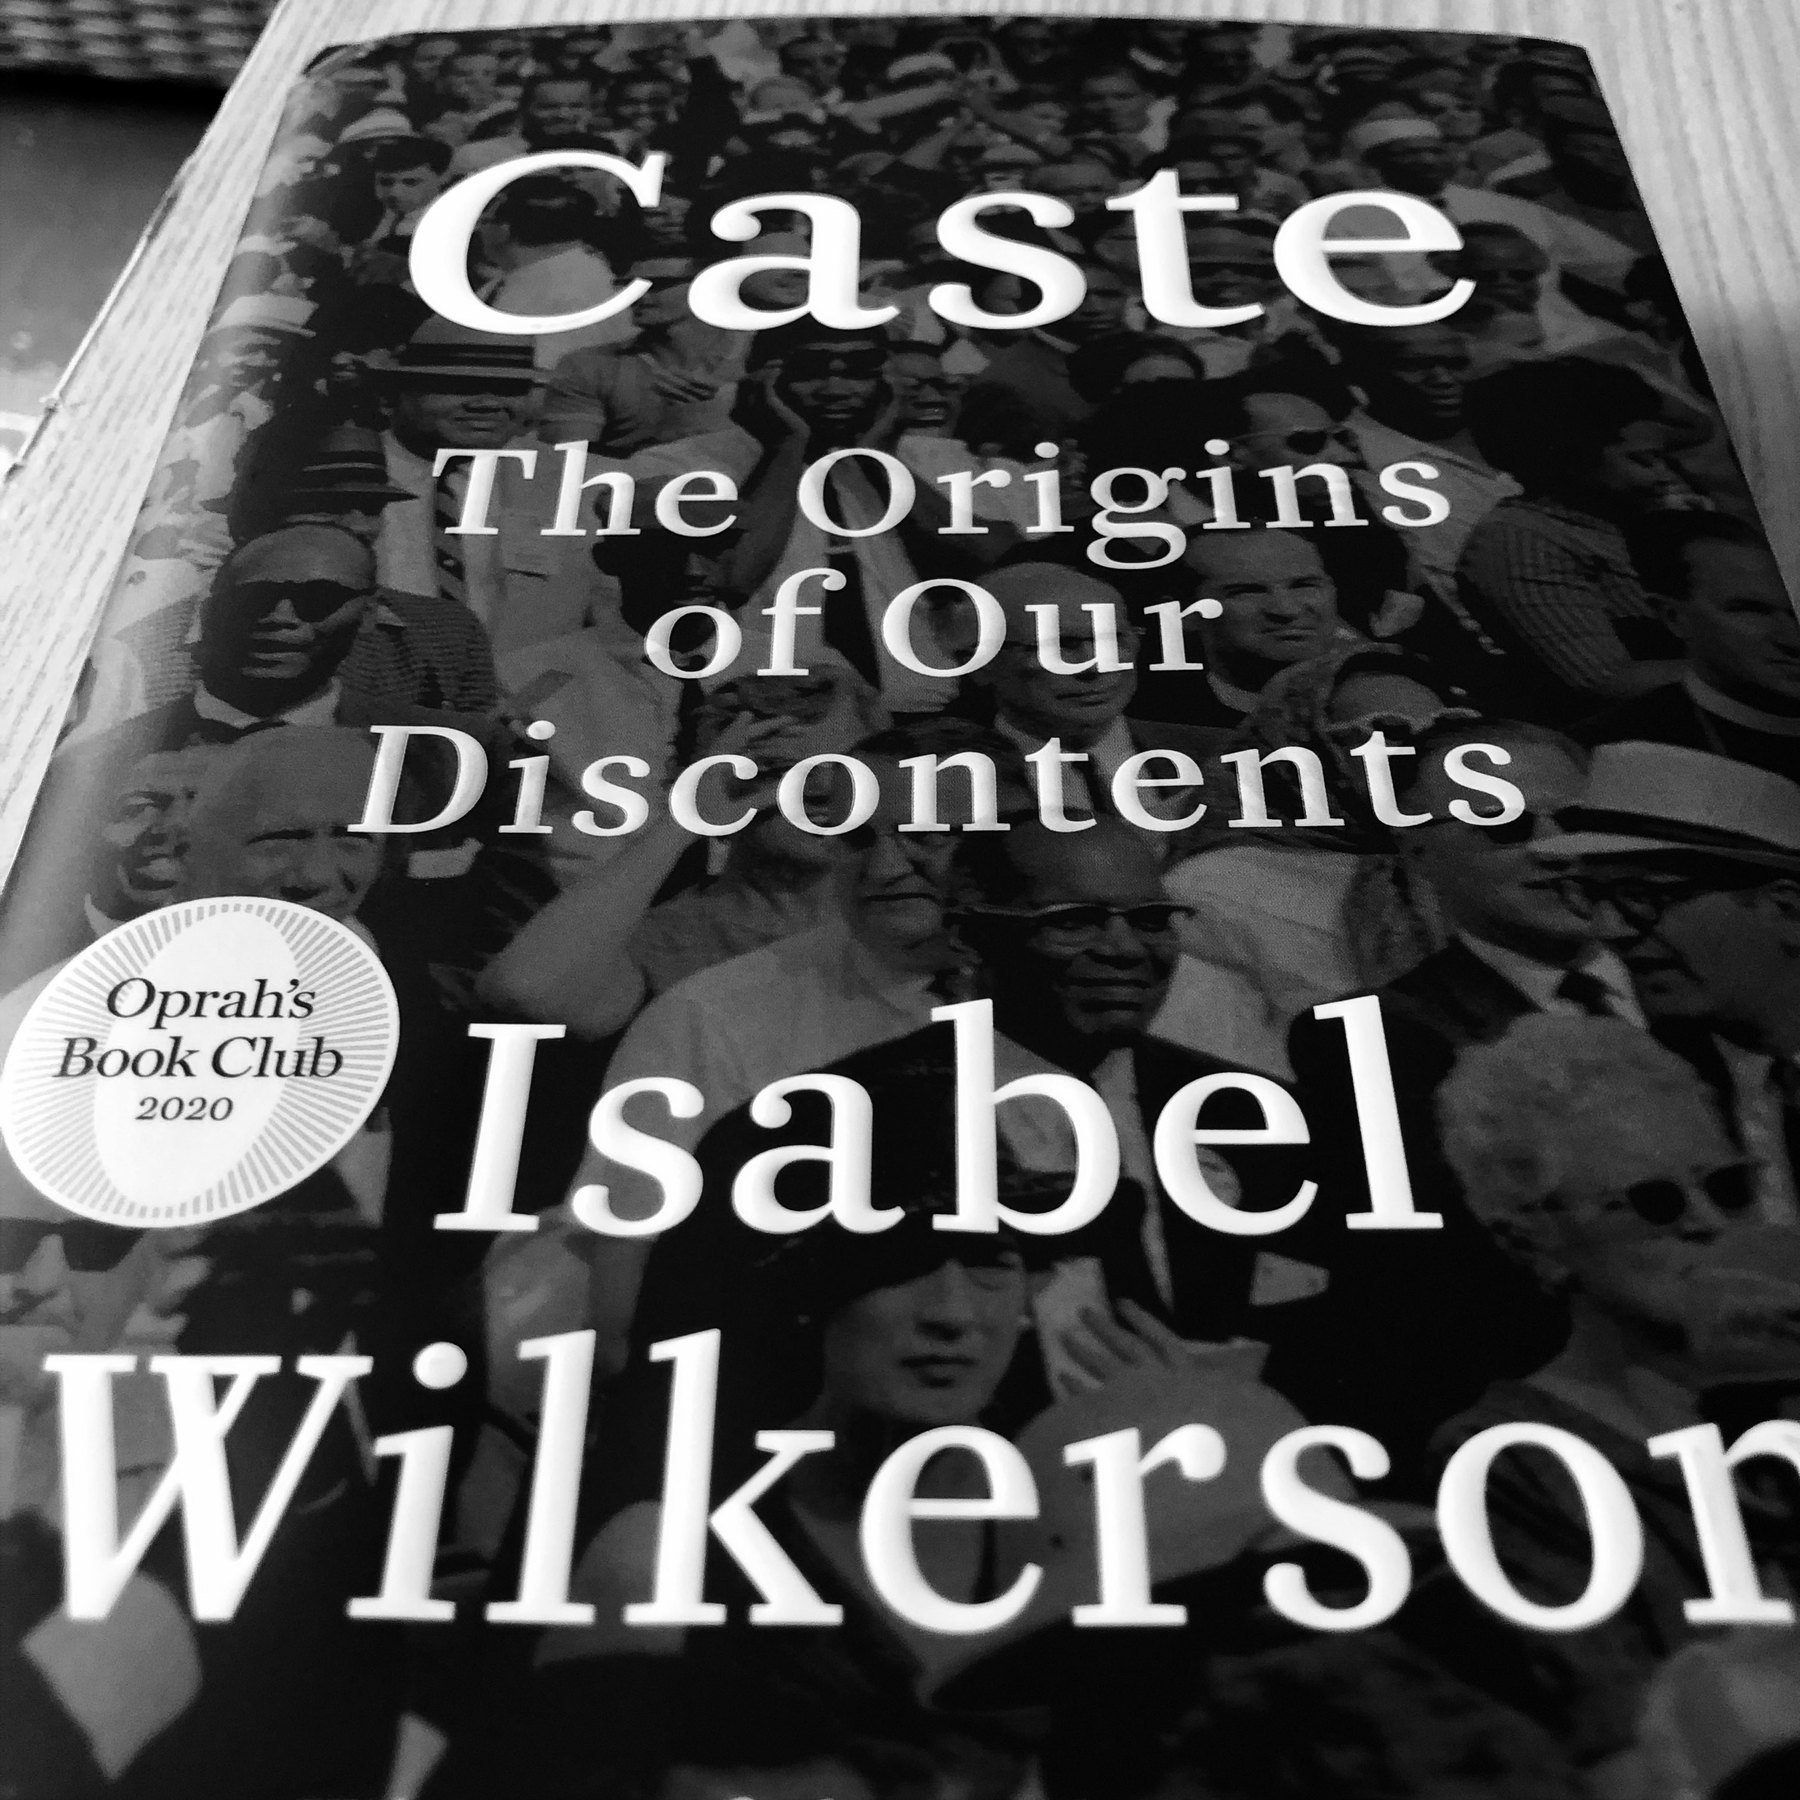 Caste, by Isabel Wilkerson